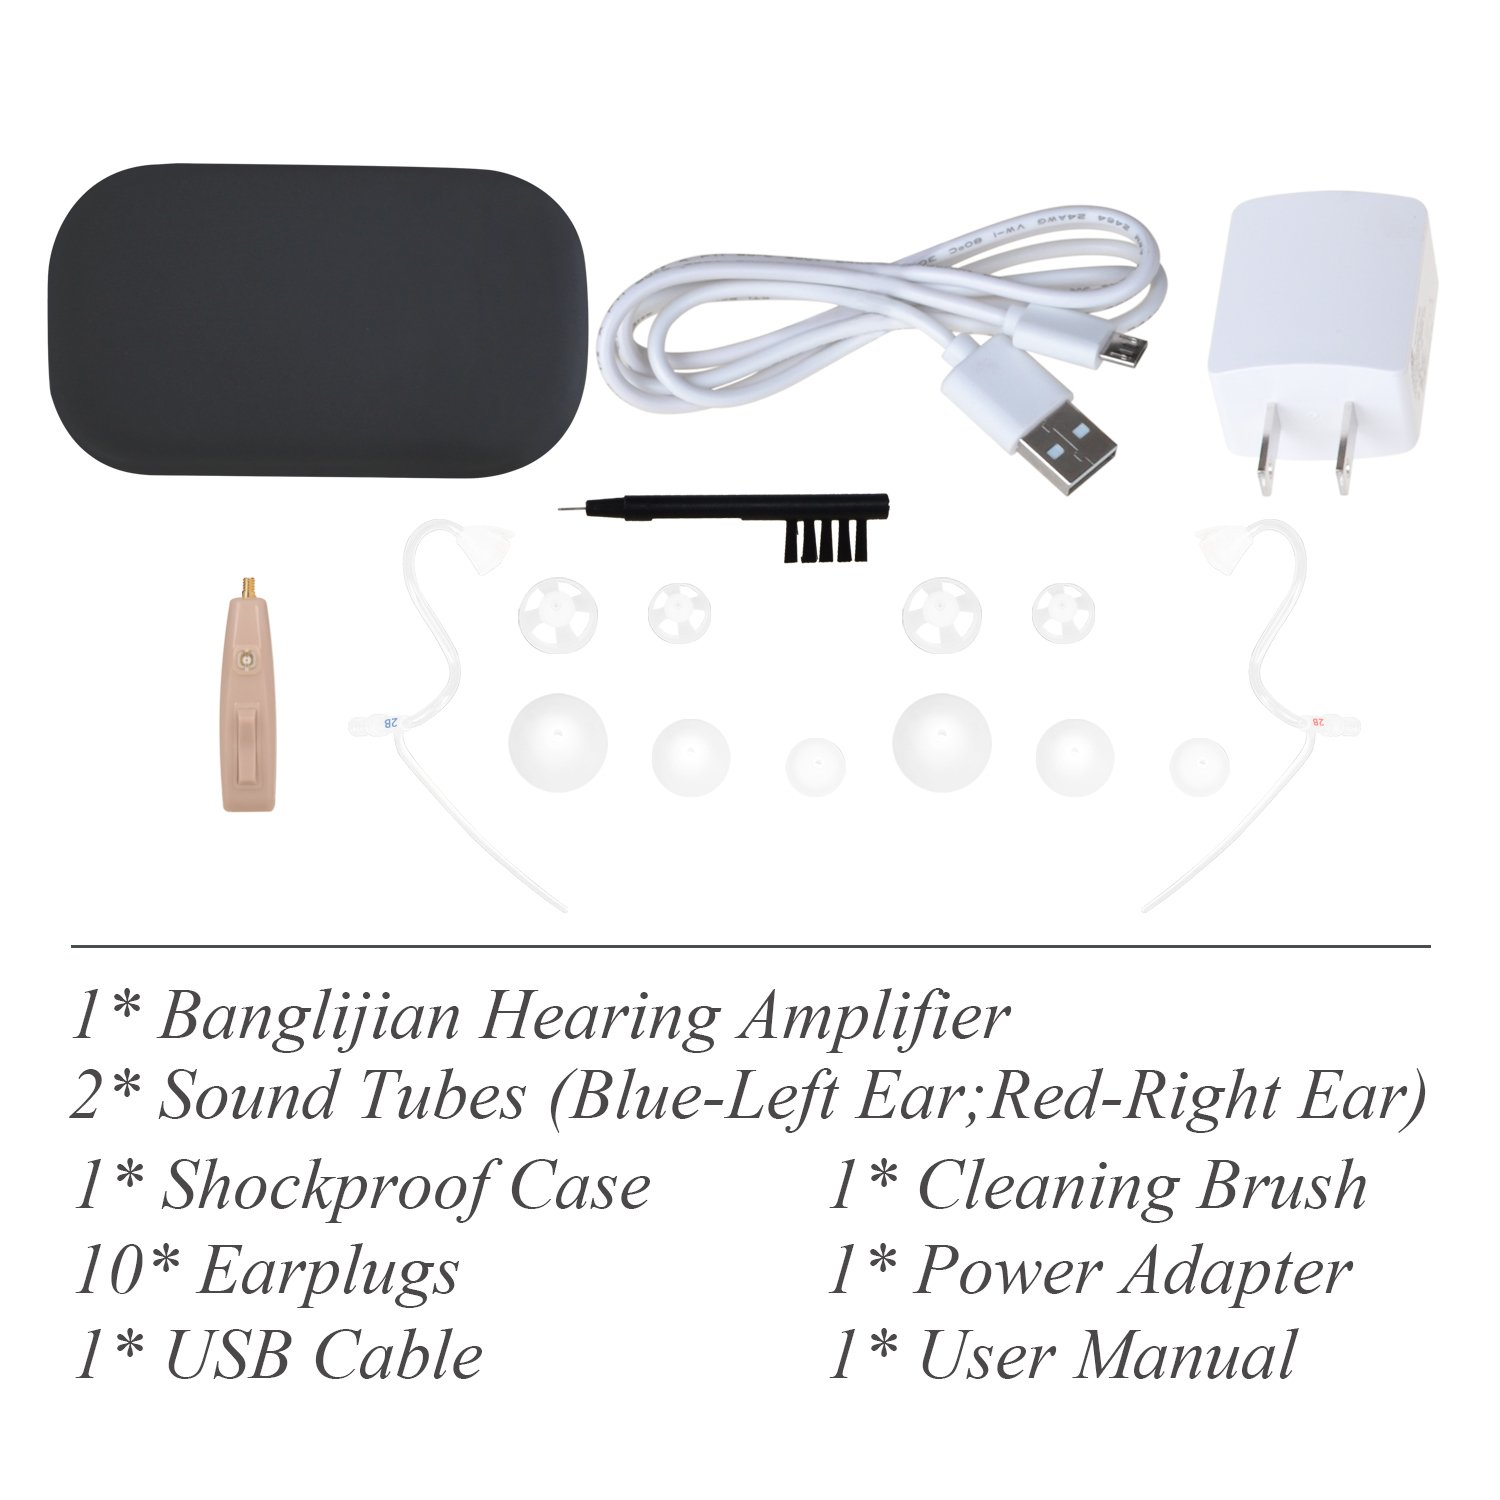 Banglijian Hearing Amplifier Ziv-201A ''FDA Approved'' Rechargeable Digital Noise Cancelling Small Size (Fit to Either Ear) by Banglijian (Image #7)